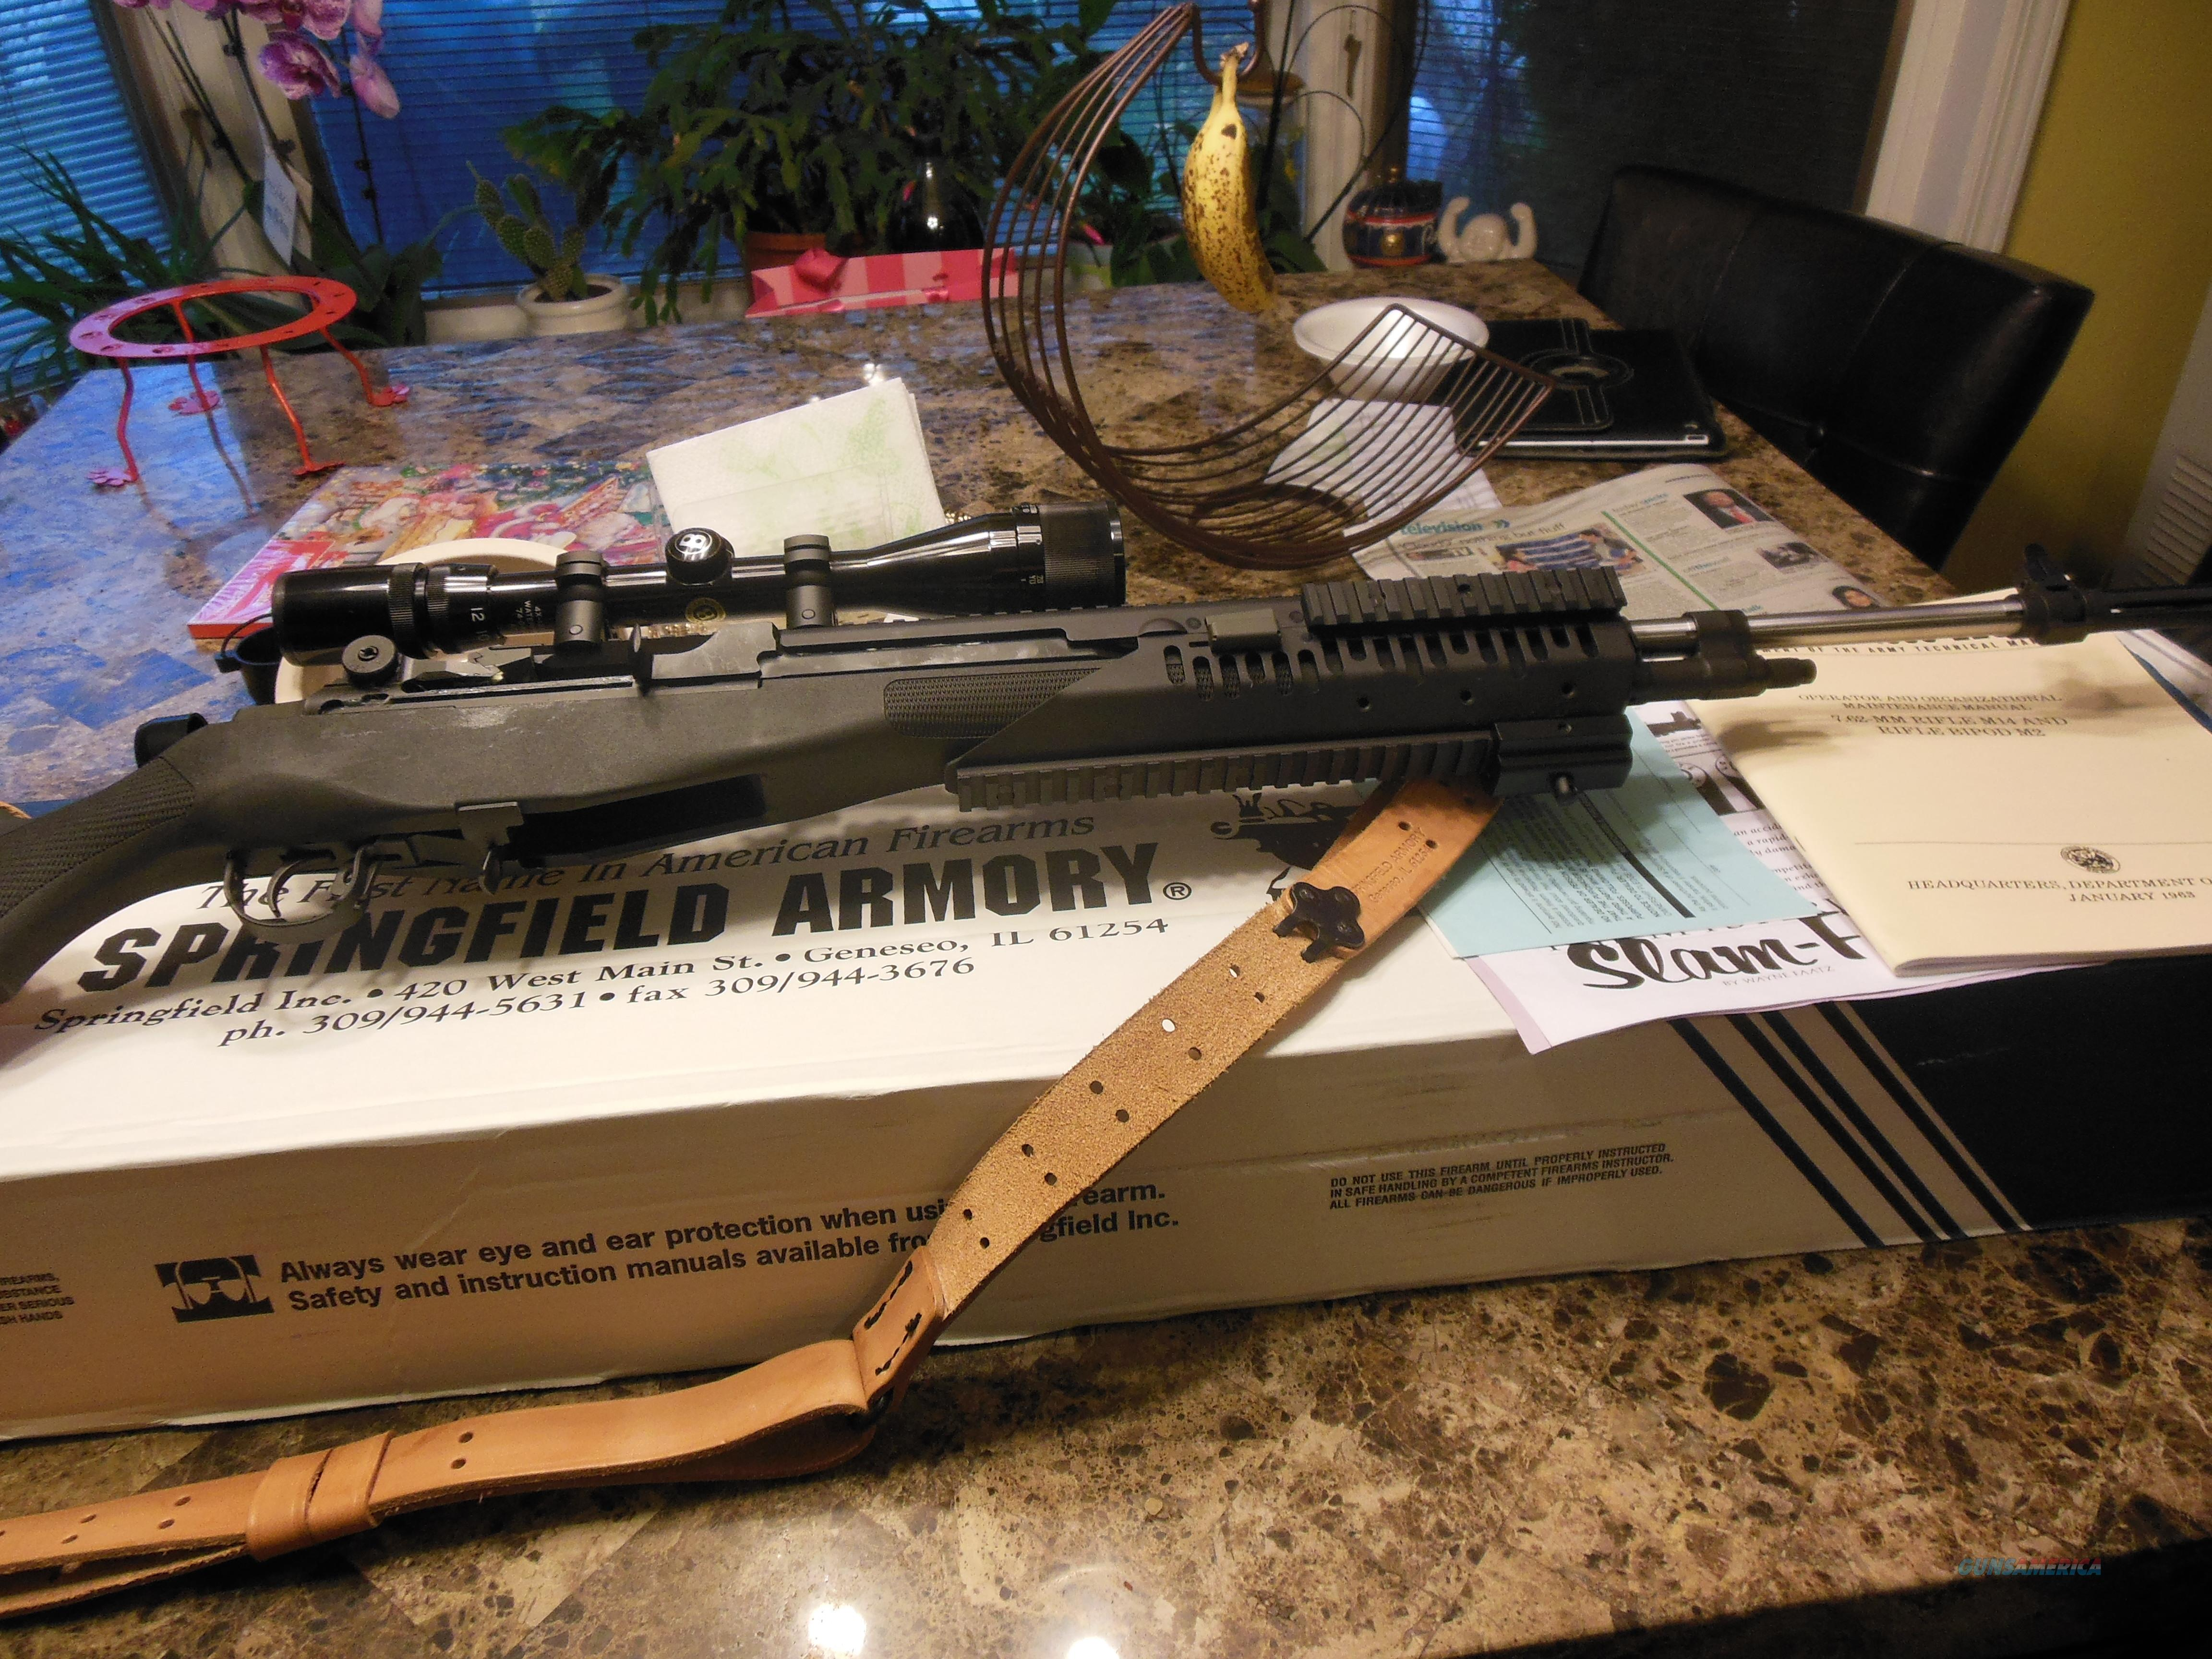 SPRINGFIELD ARMORY MA 9827 LOADED EXTENDE CLUSTER RAIL, NAT MATCH BARREL, NEW IN BOX, ALL PAPERS  Guns > Rifles > Springfield Armory Rifles > M1A/M14